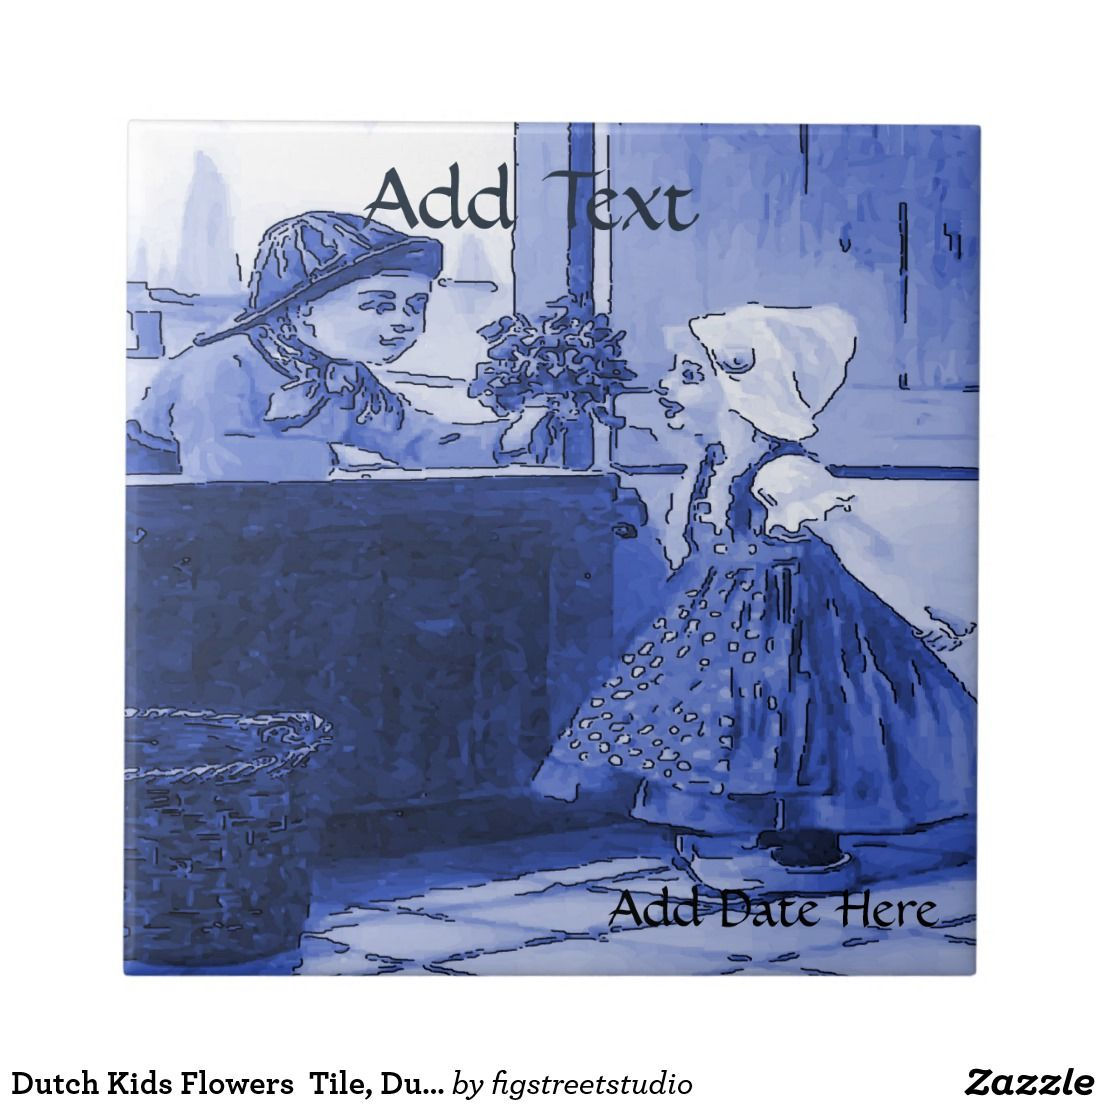 Dutch kids flowers tile dutch look personalize ceramic tile delft dutch kids flowers tile dutch look personalize ceramic tile dailygadgetfo Image collections